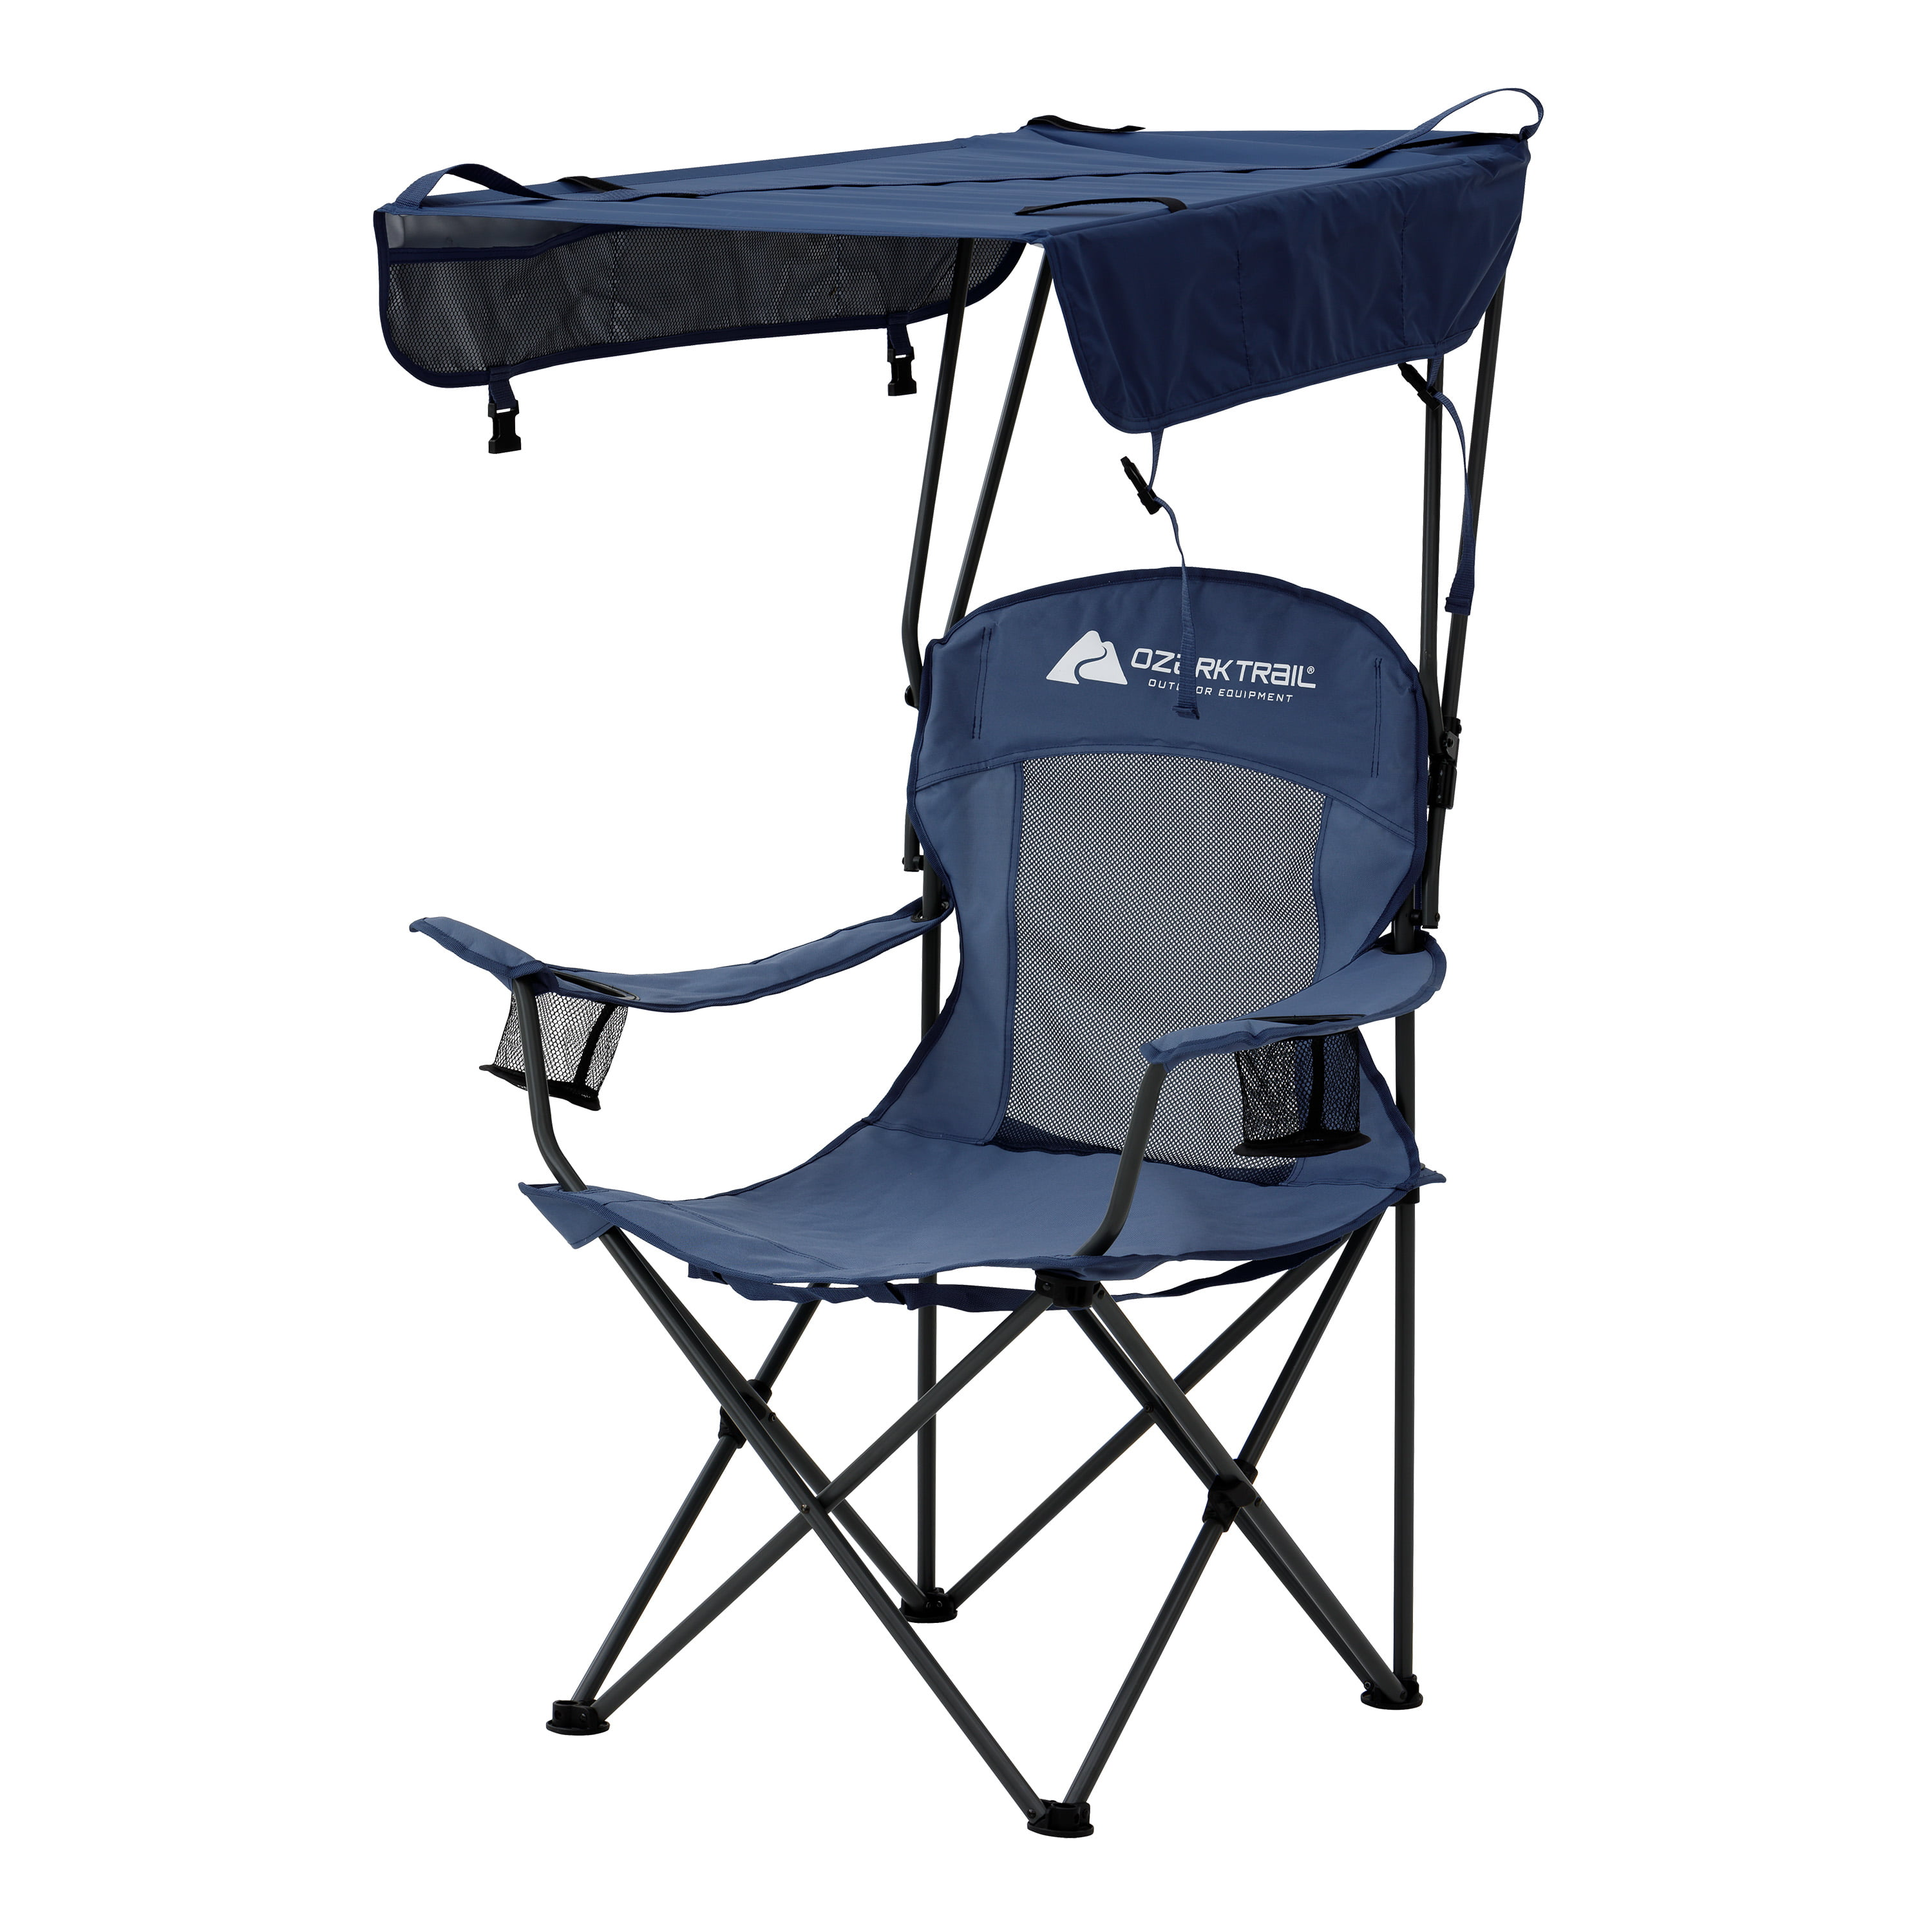 b40c787c1c Ozark Trail Sand Island Shaded Canopy Camping Chair with Cup Holders